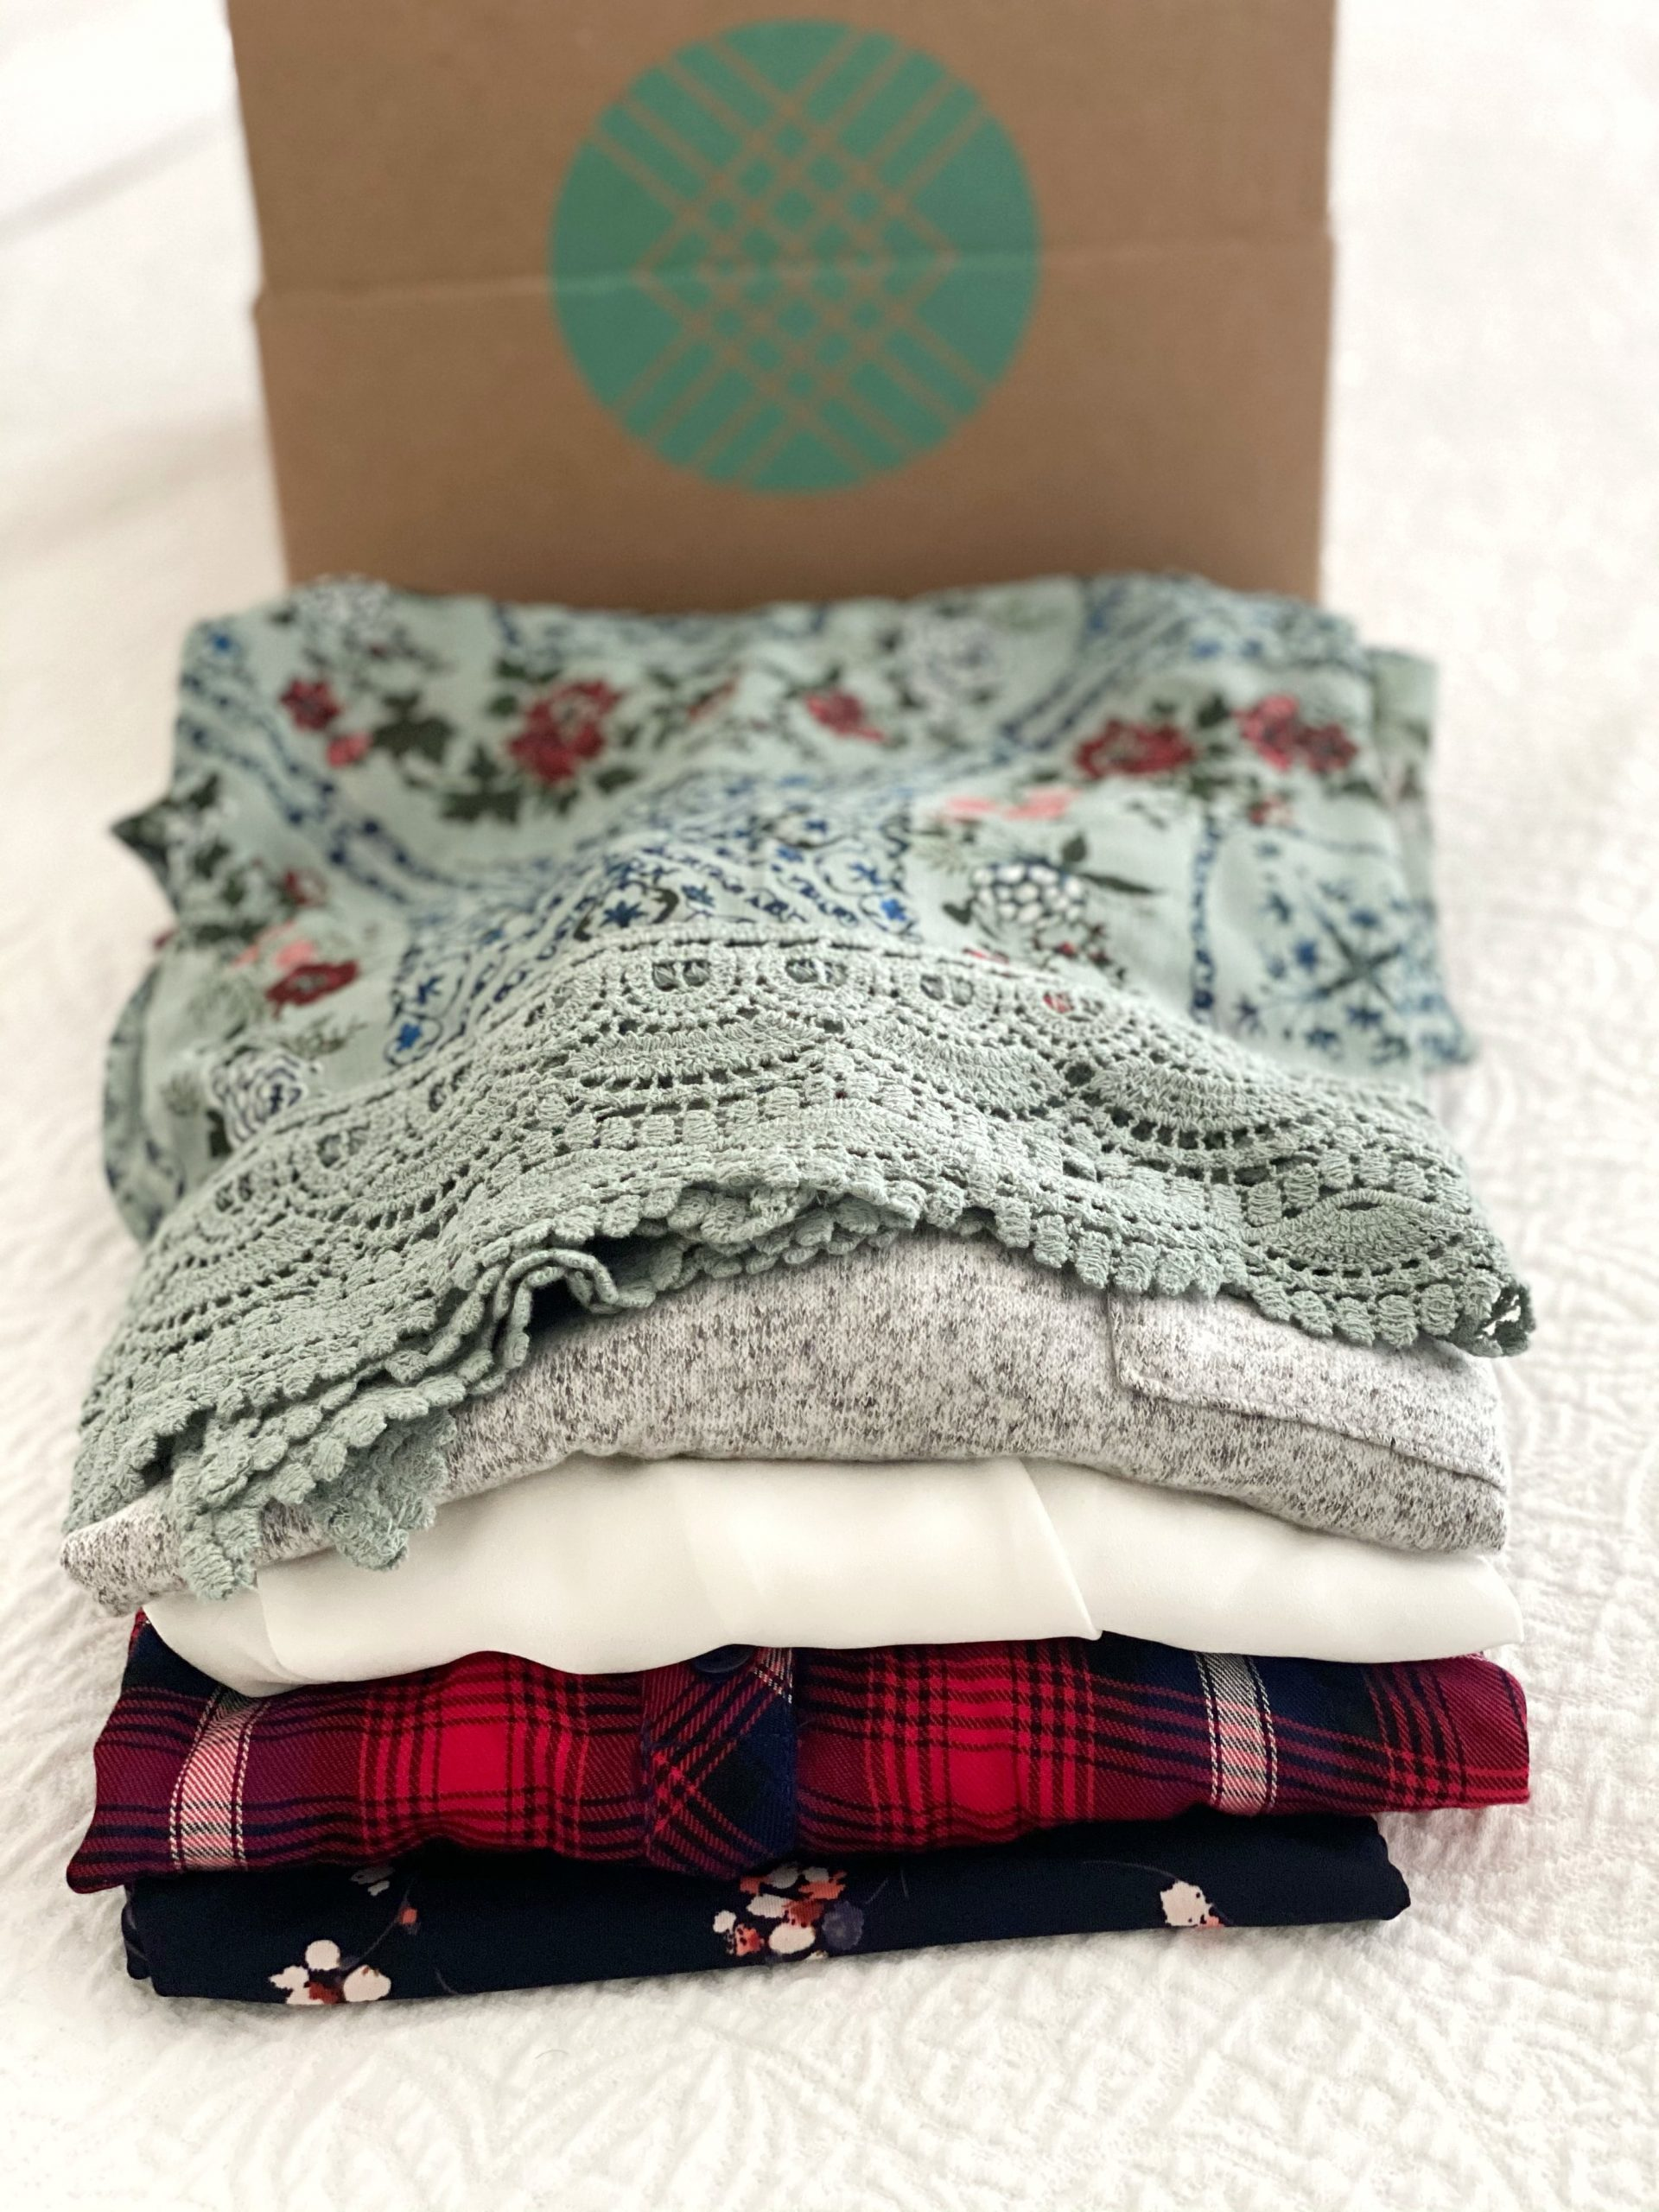 Stitch Fix Box Review for October 2020